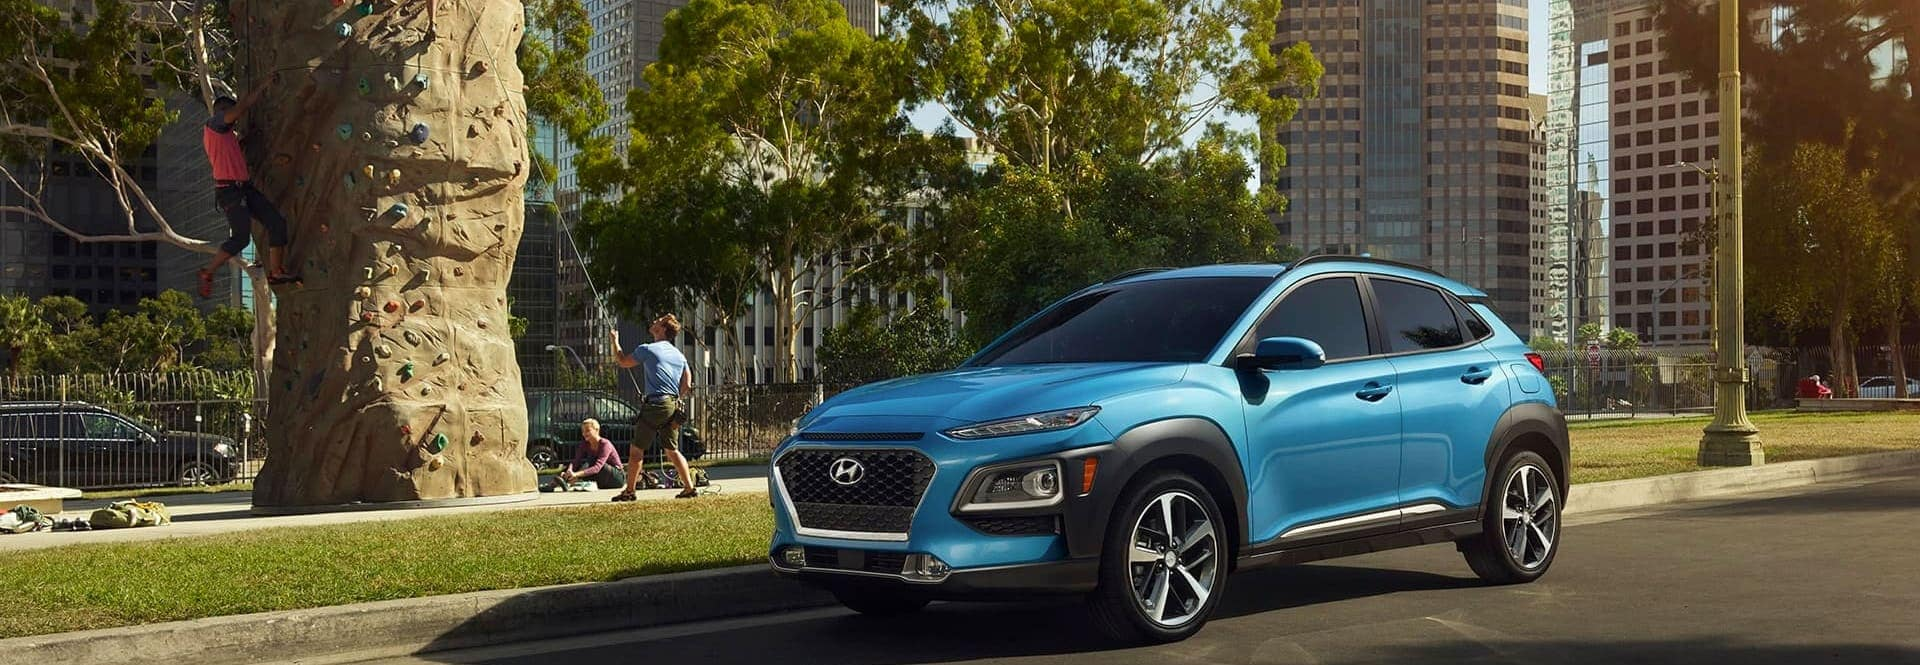 A blue Hyundai SUV parked on the street next to a rock climbing wall